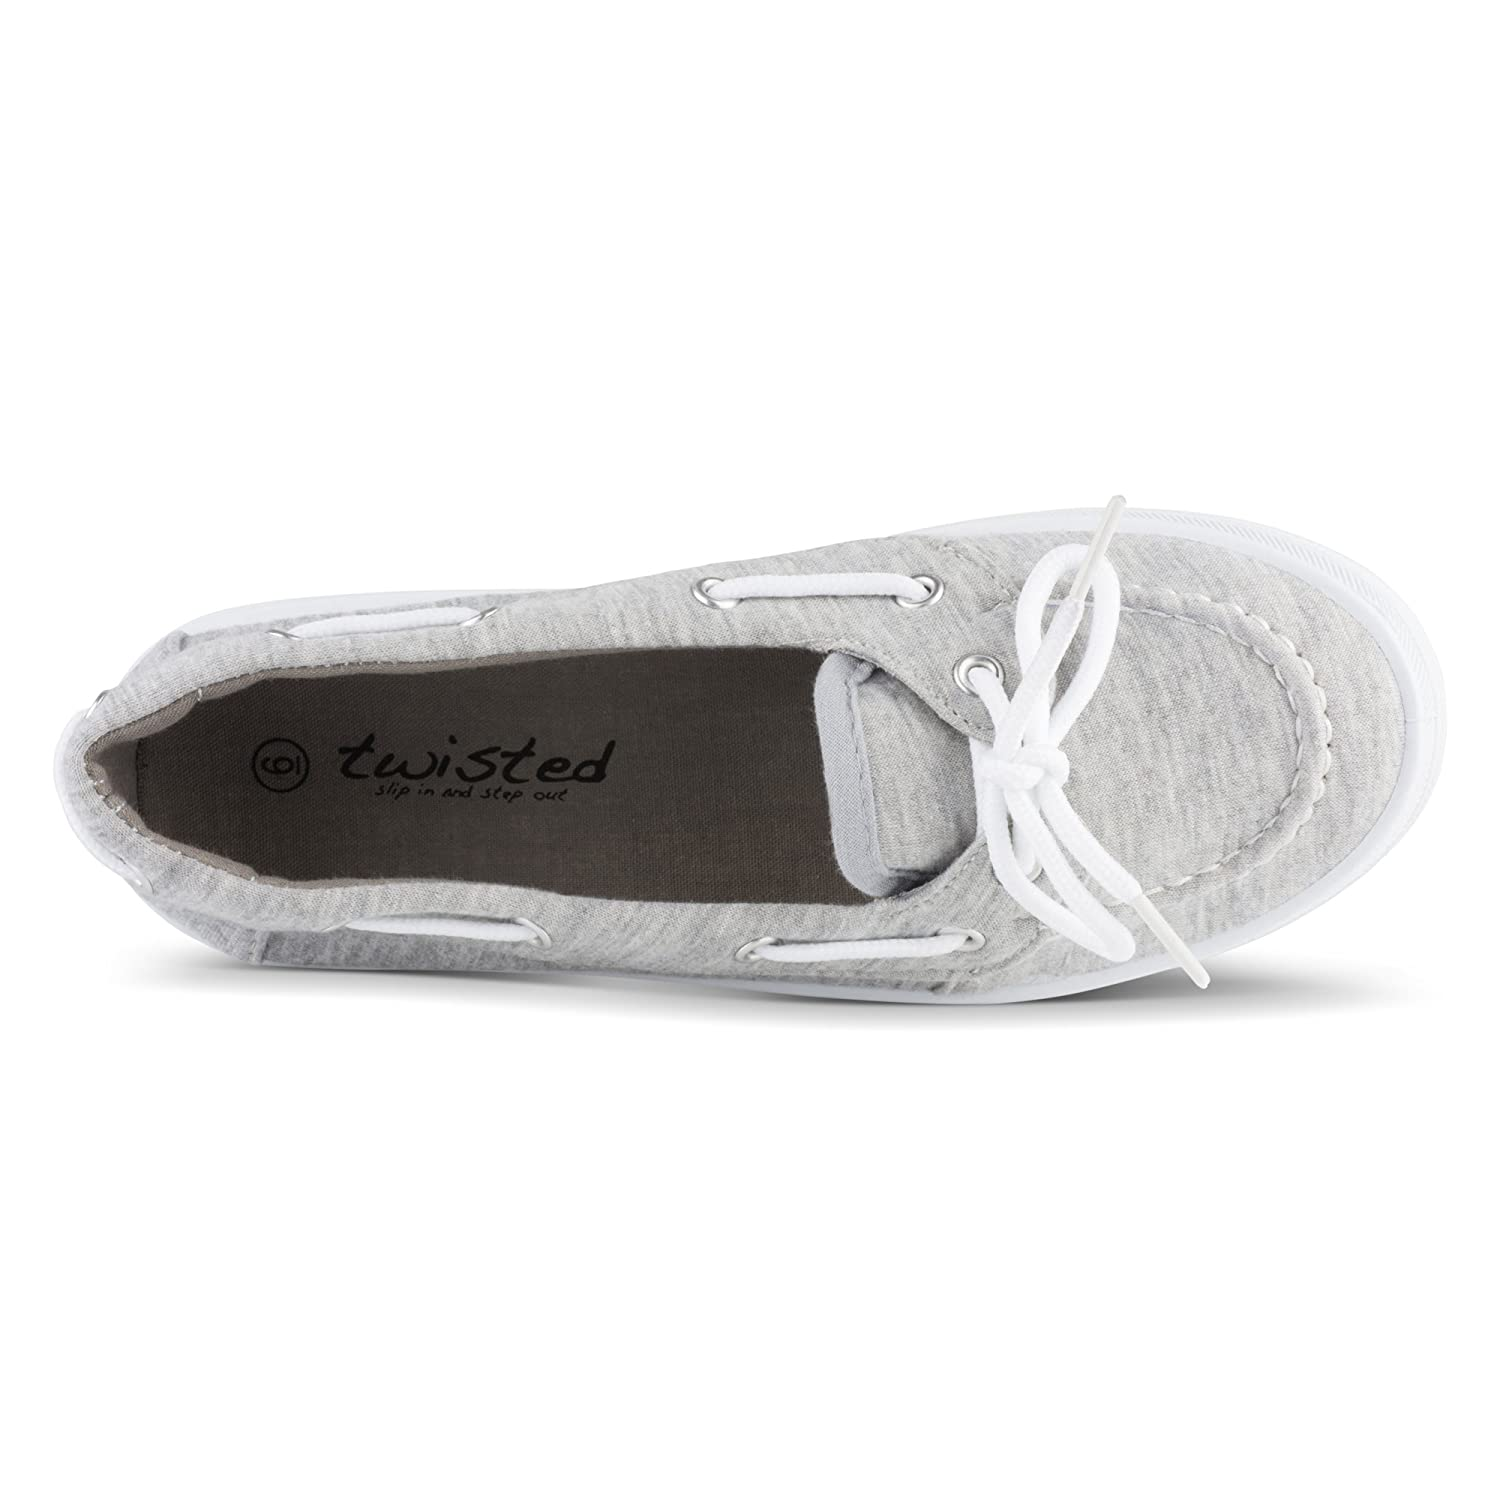 b1ae7d6f6d2345 Amazon.com | Twisted Women's Casual Canvas Boat Shoe | Loafers & Slip-Ons